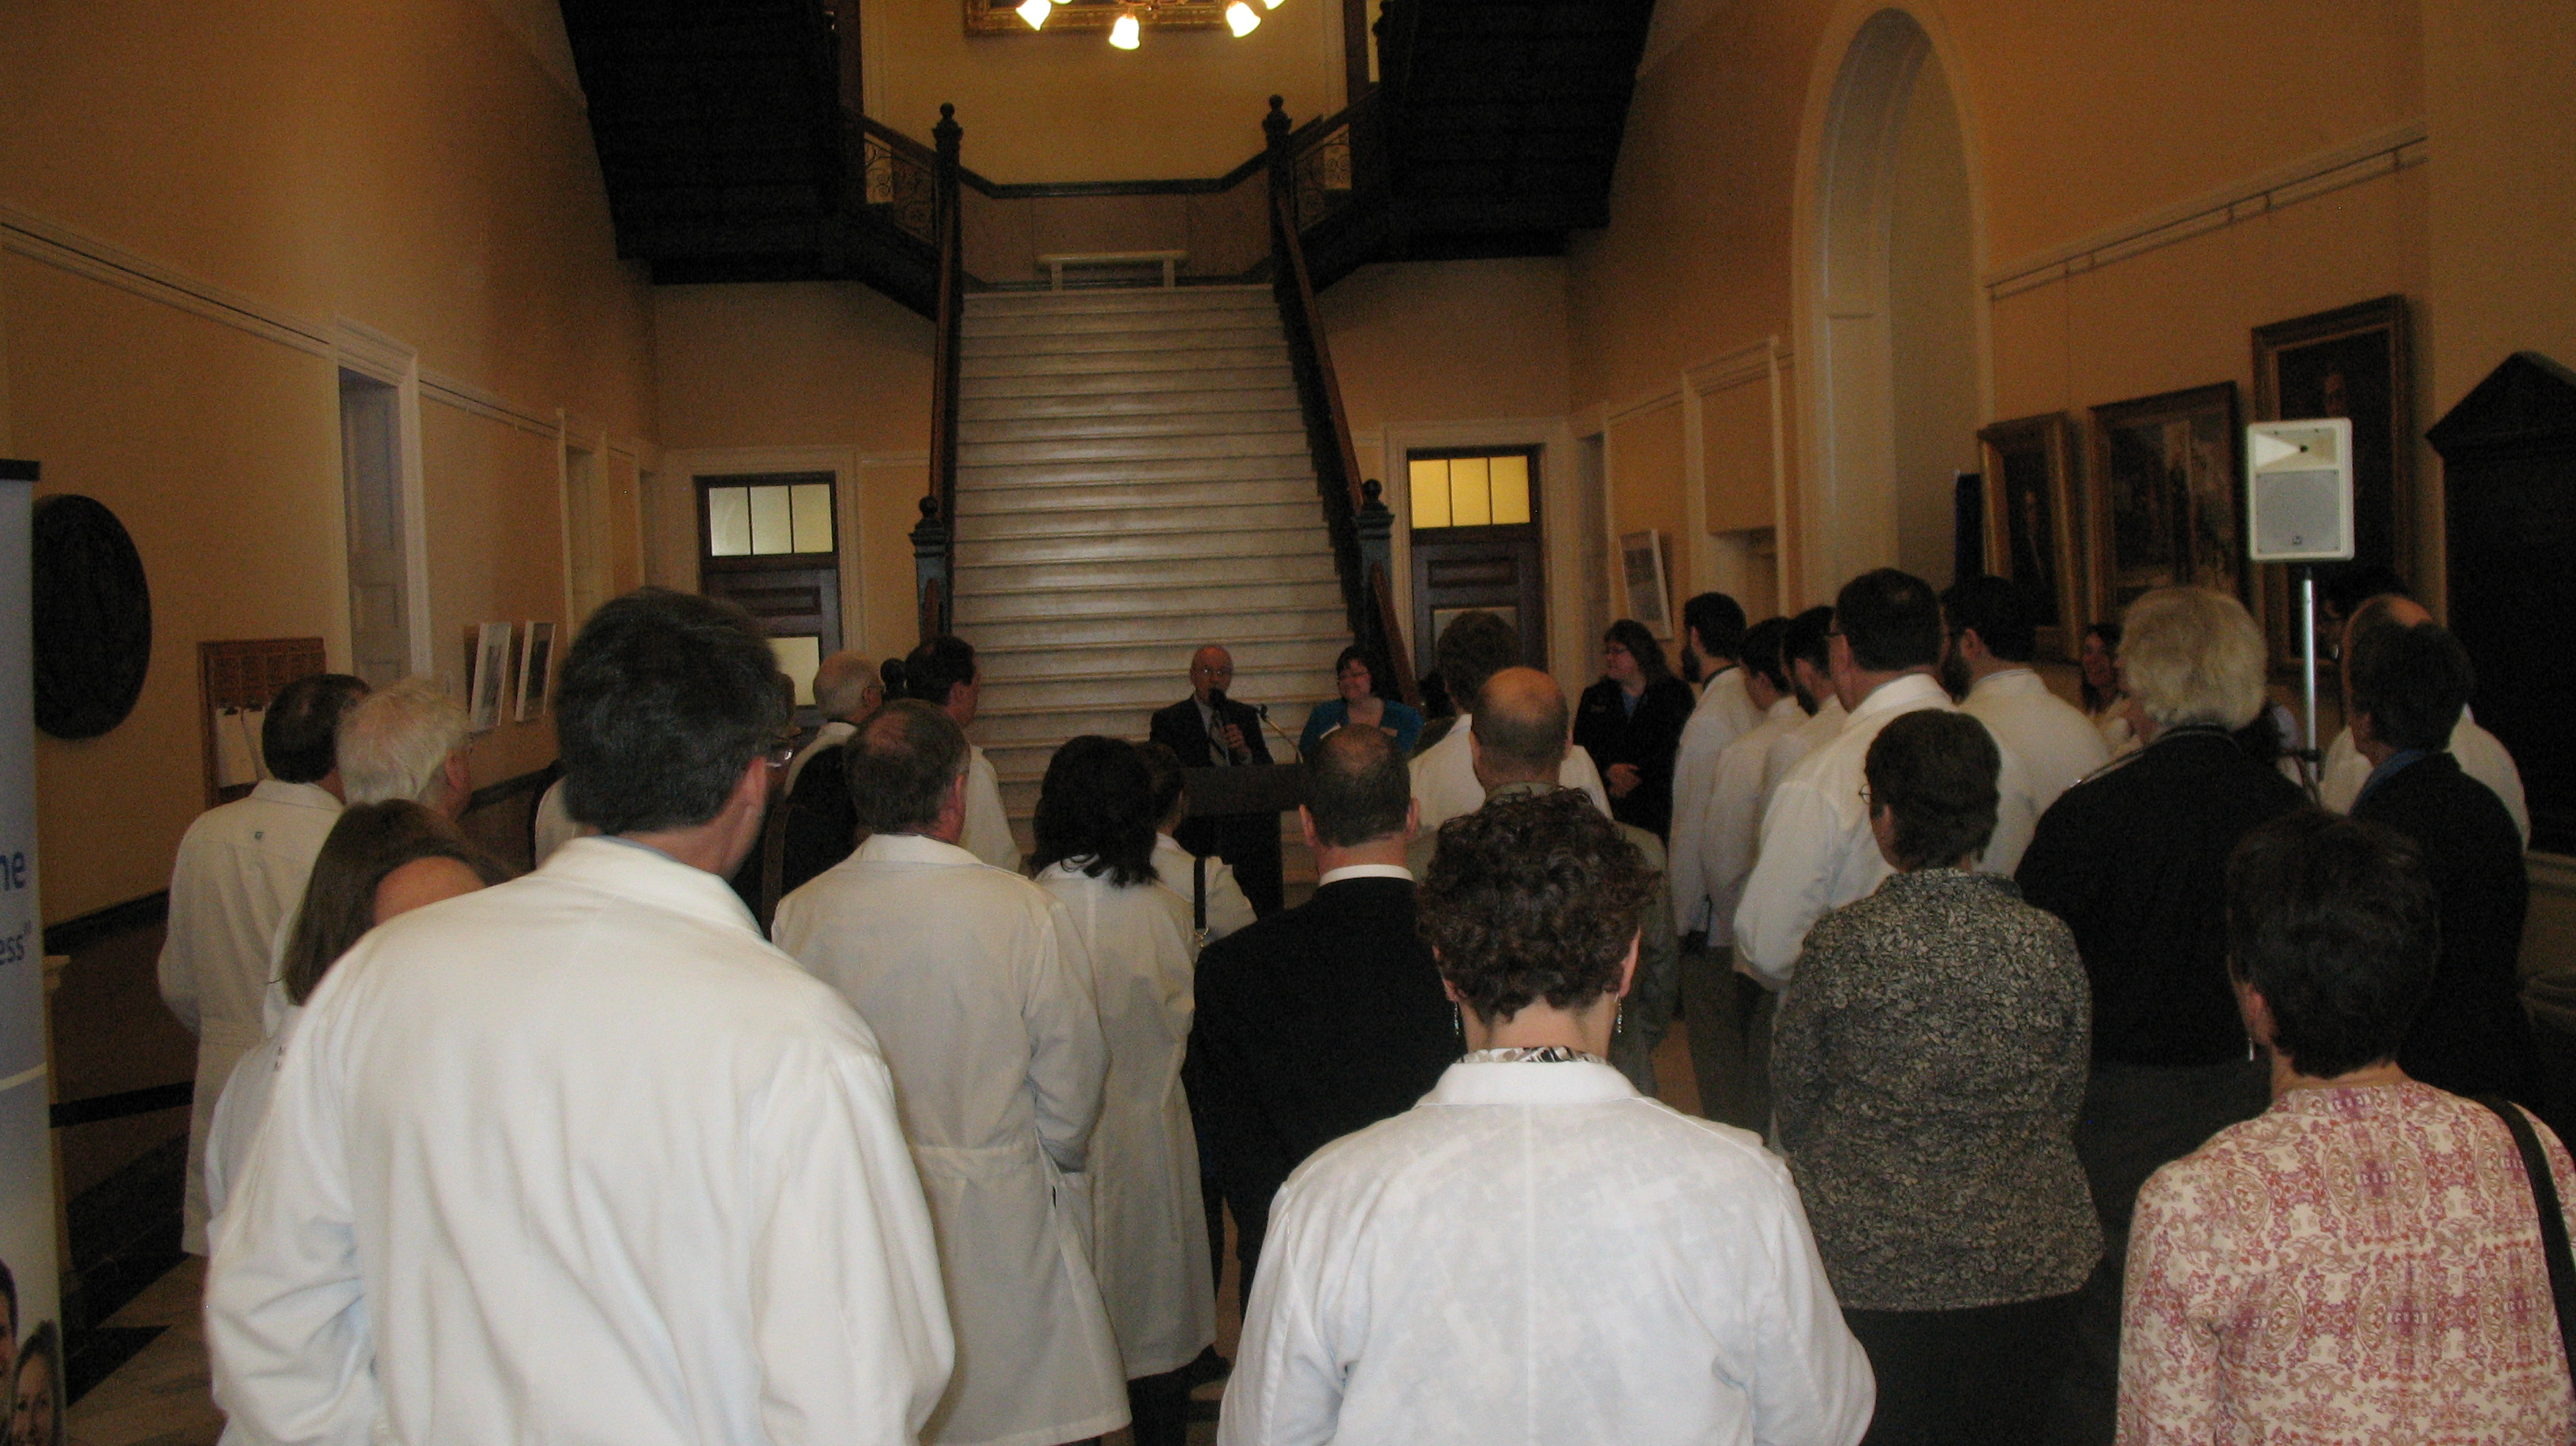 Gordon Smith, Esq., MMA EVP, addresses the doctors in the Hall of Flags.